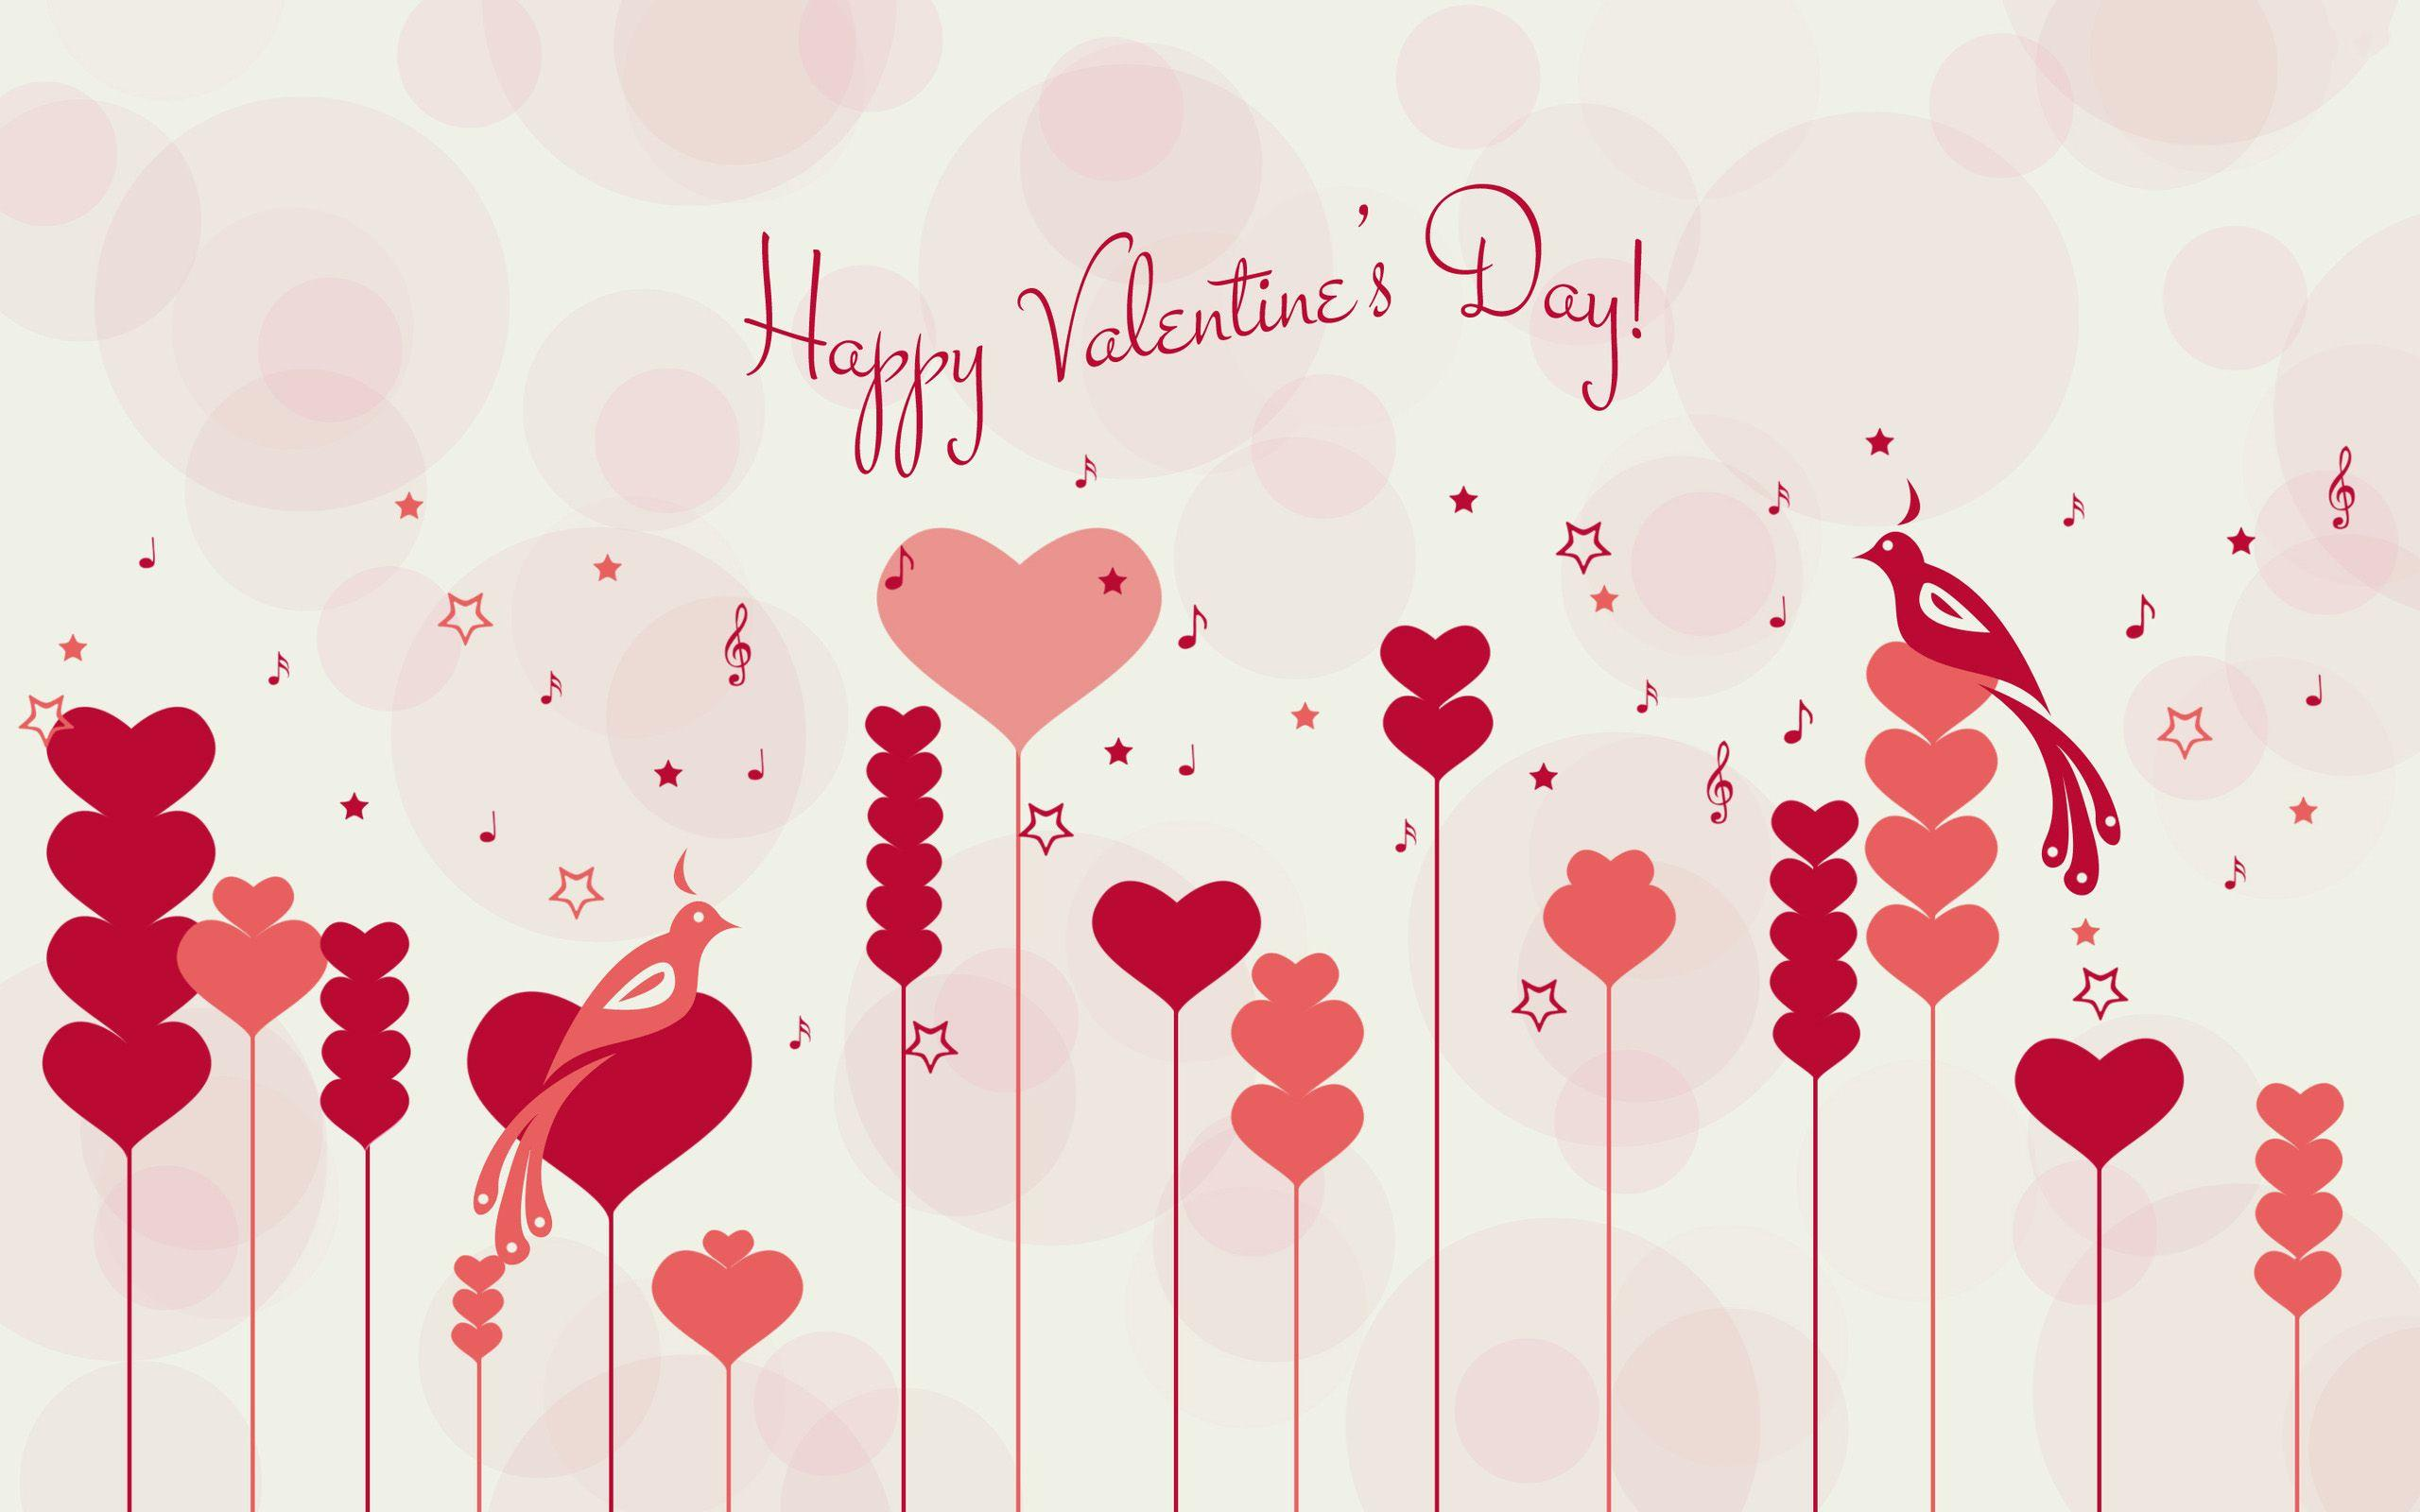 Valentine's Day 2018 HD Wallpapers, Clipart and Posters – Latest ...